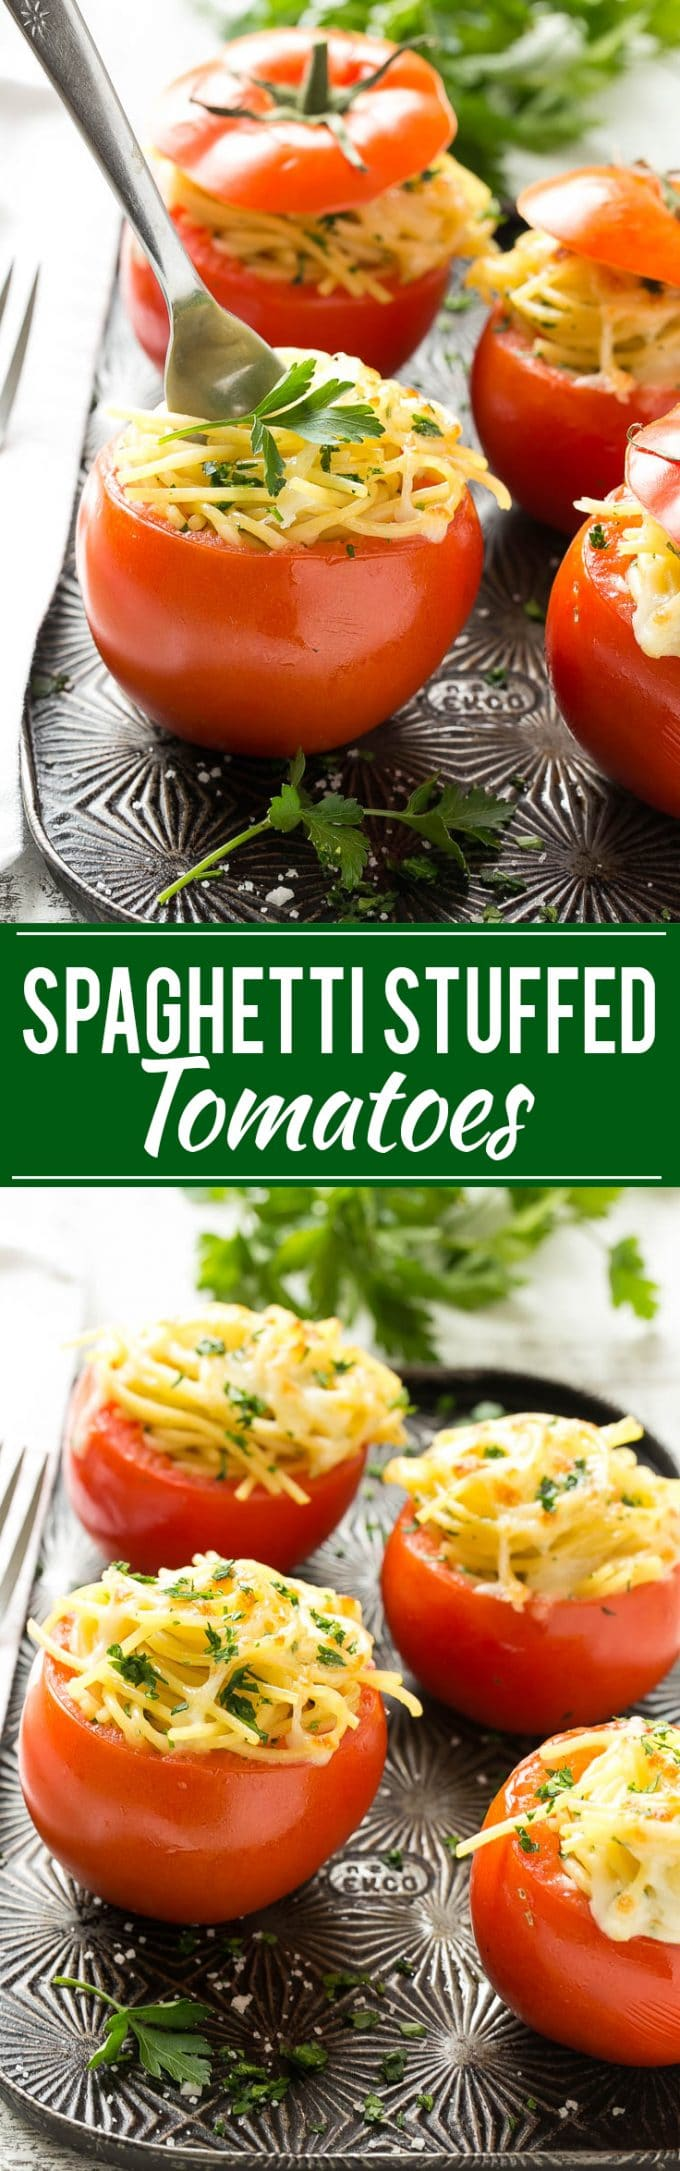 These baked stuffed tomatoes are full of spaghetti and topped with plenty of cheese. They're a fun and unique vegetarian side dish or main course!